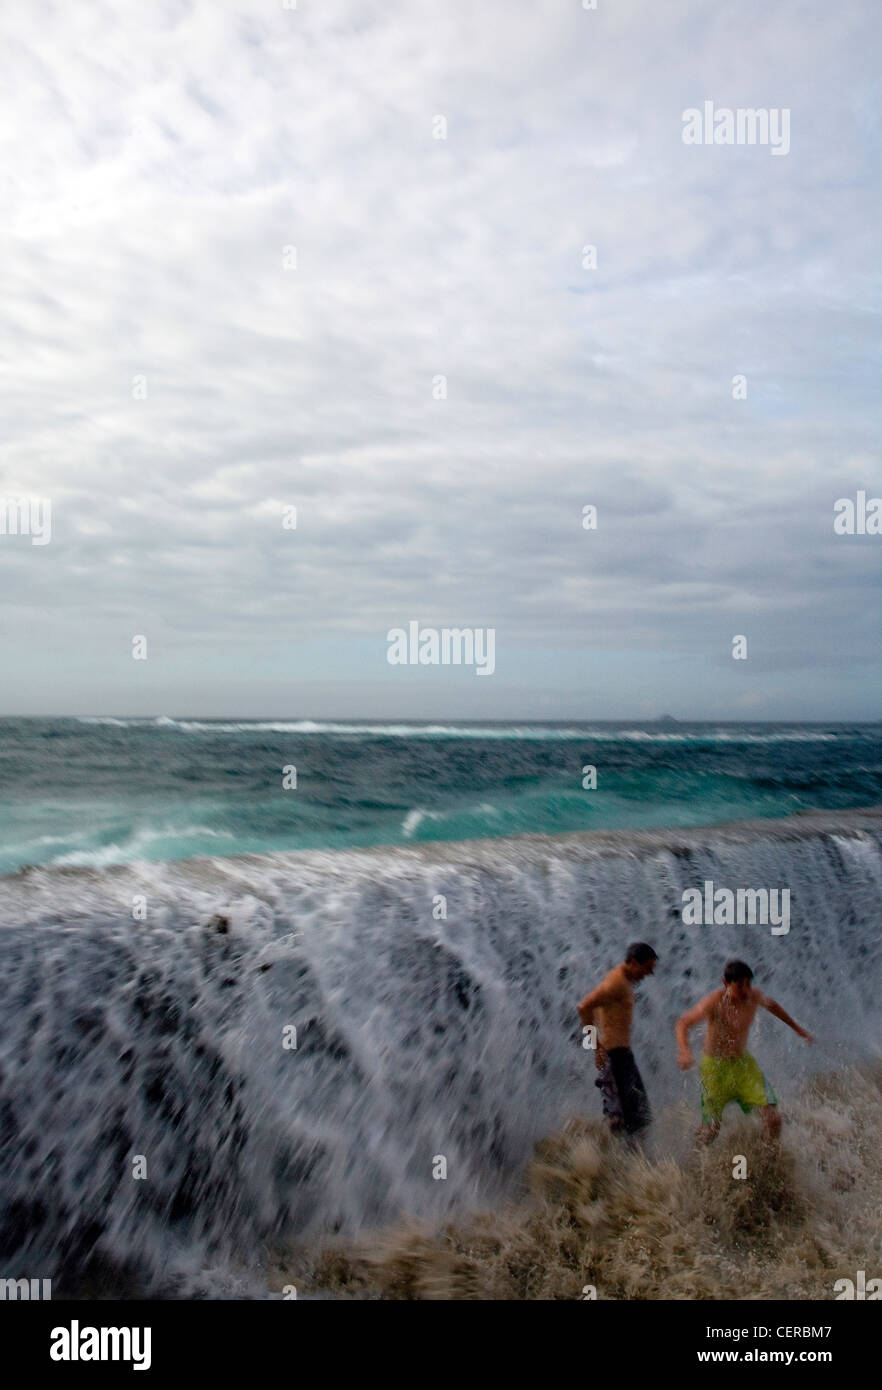 Waves crashing over the breakwater in a storm, soak two visitors, who are in danger of having their feet swept from - Stock Image